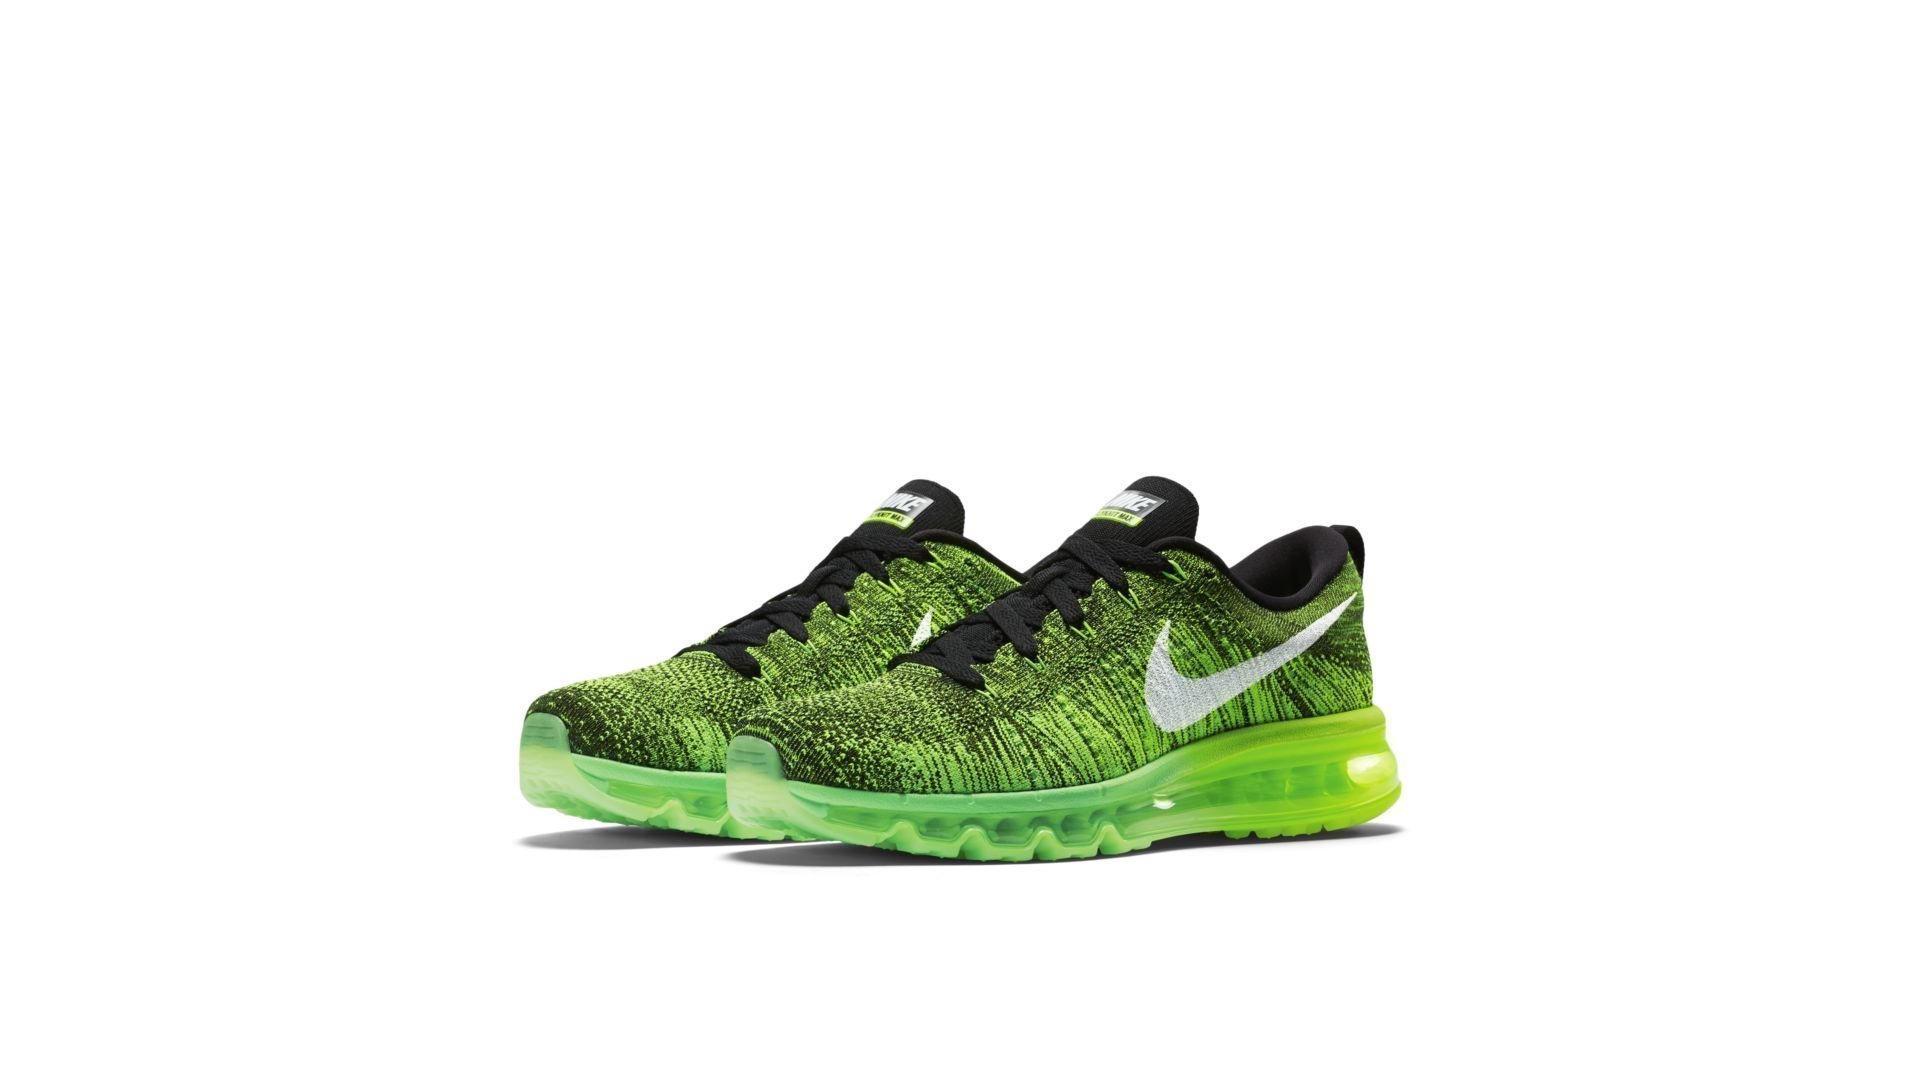 Nike Flyknit Max Voltage Green (620469-007)